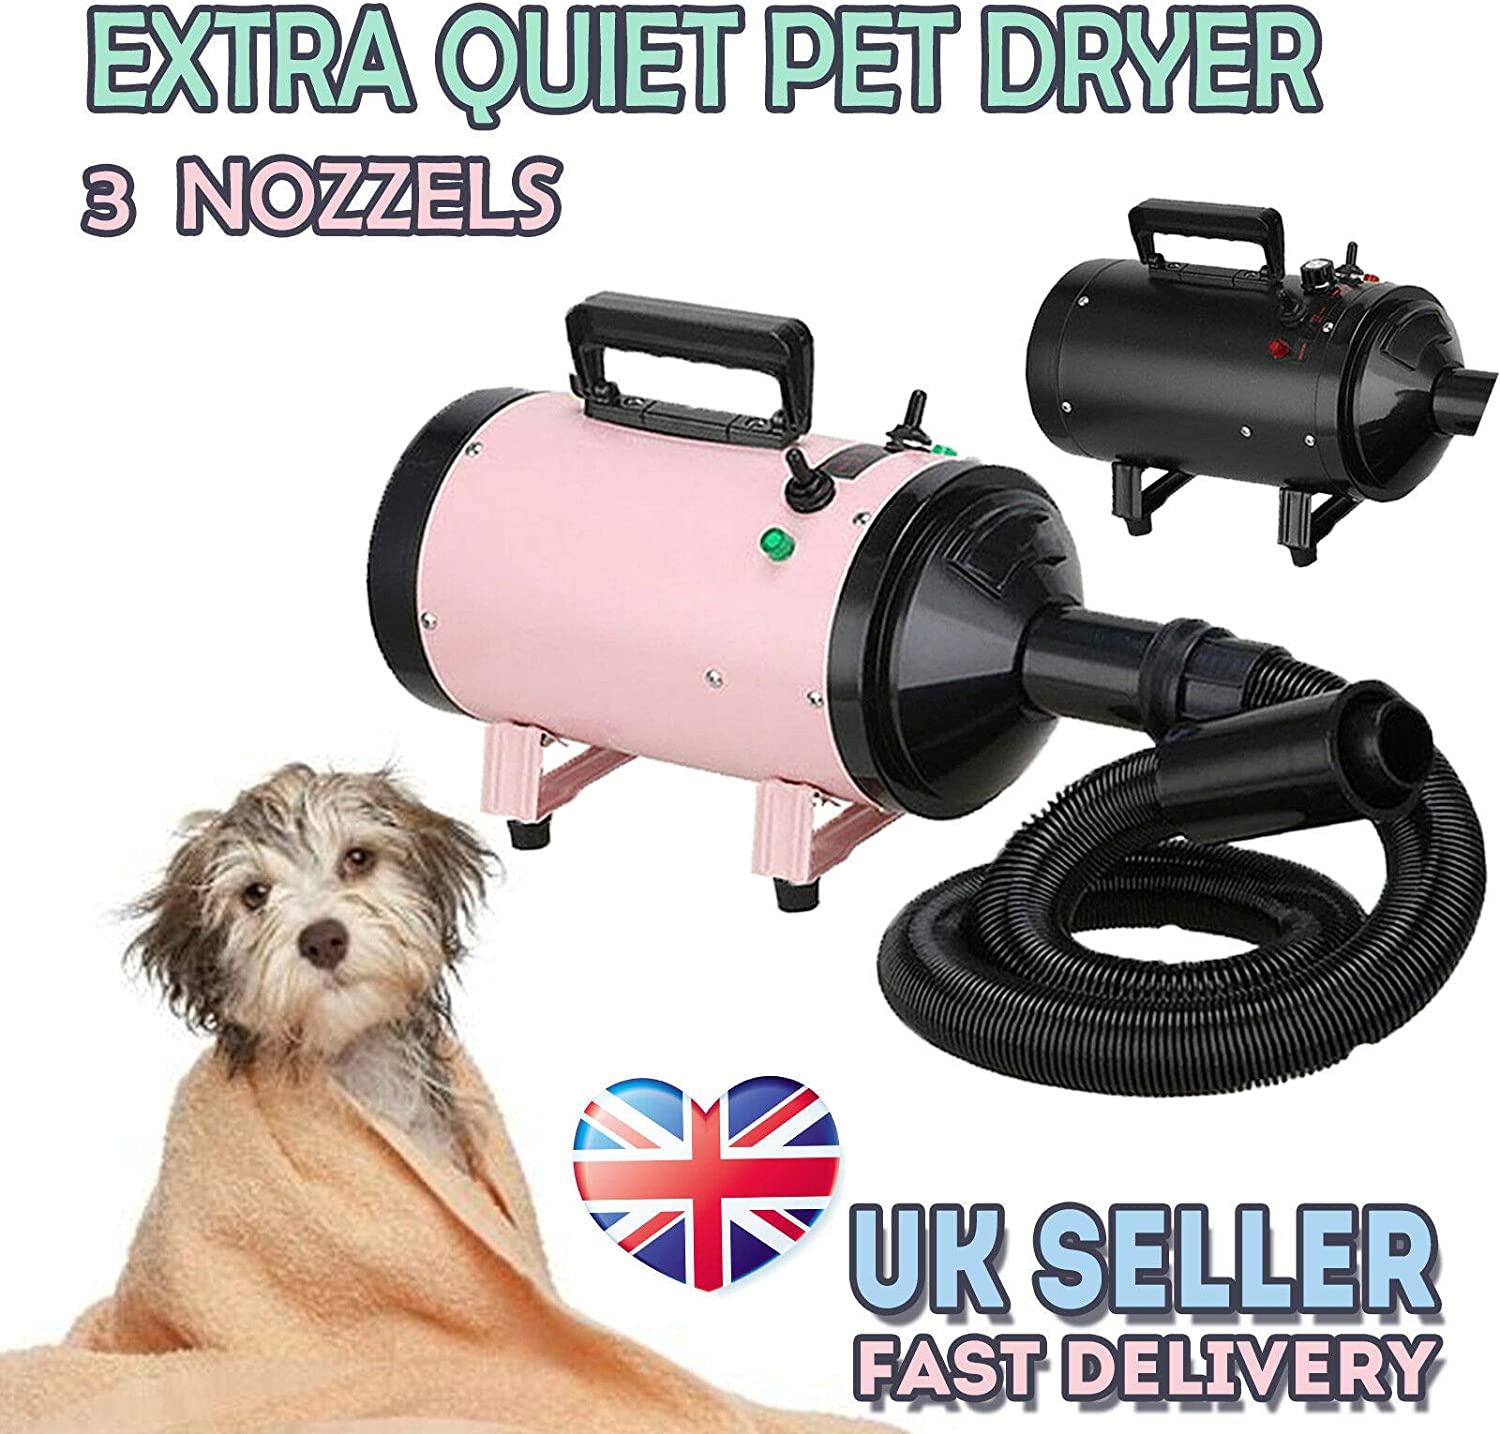 Pet Dryer 2800W 2 Wind Speed Dog Grooming Hair Fur Dryer Cat Hairdryer Professional Heater Blaster Low Noise 2.5M Flexible Hose with 3 Nozzles,Pink